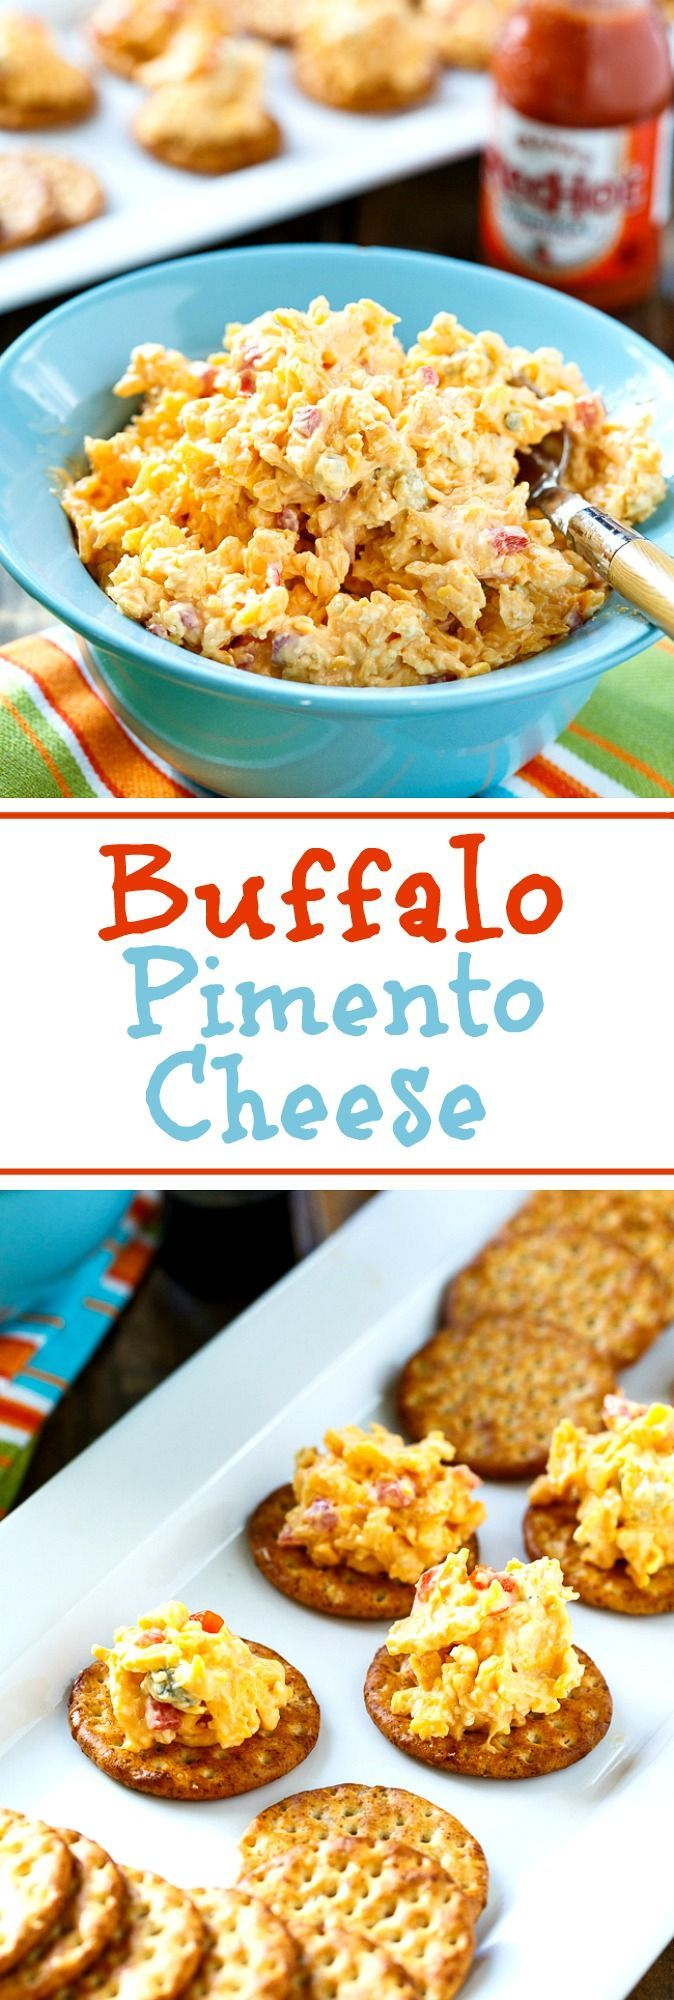 Buffalo Pimento Cheese with hot sauce and blue cheese crumbles.